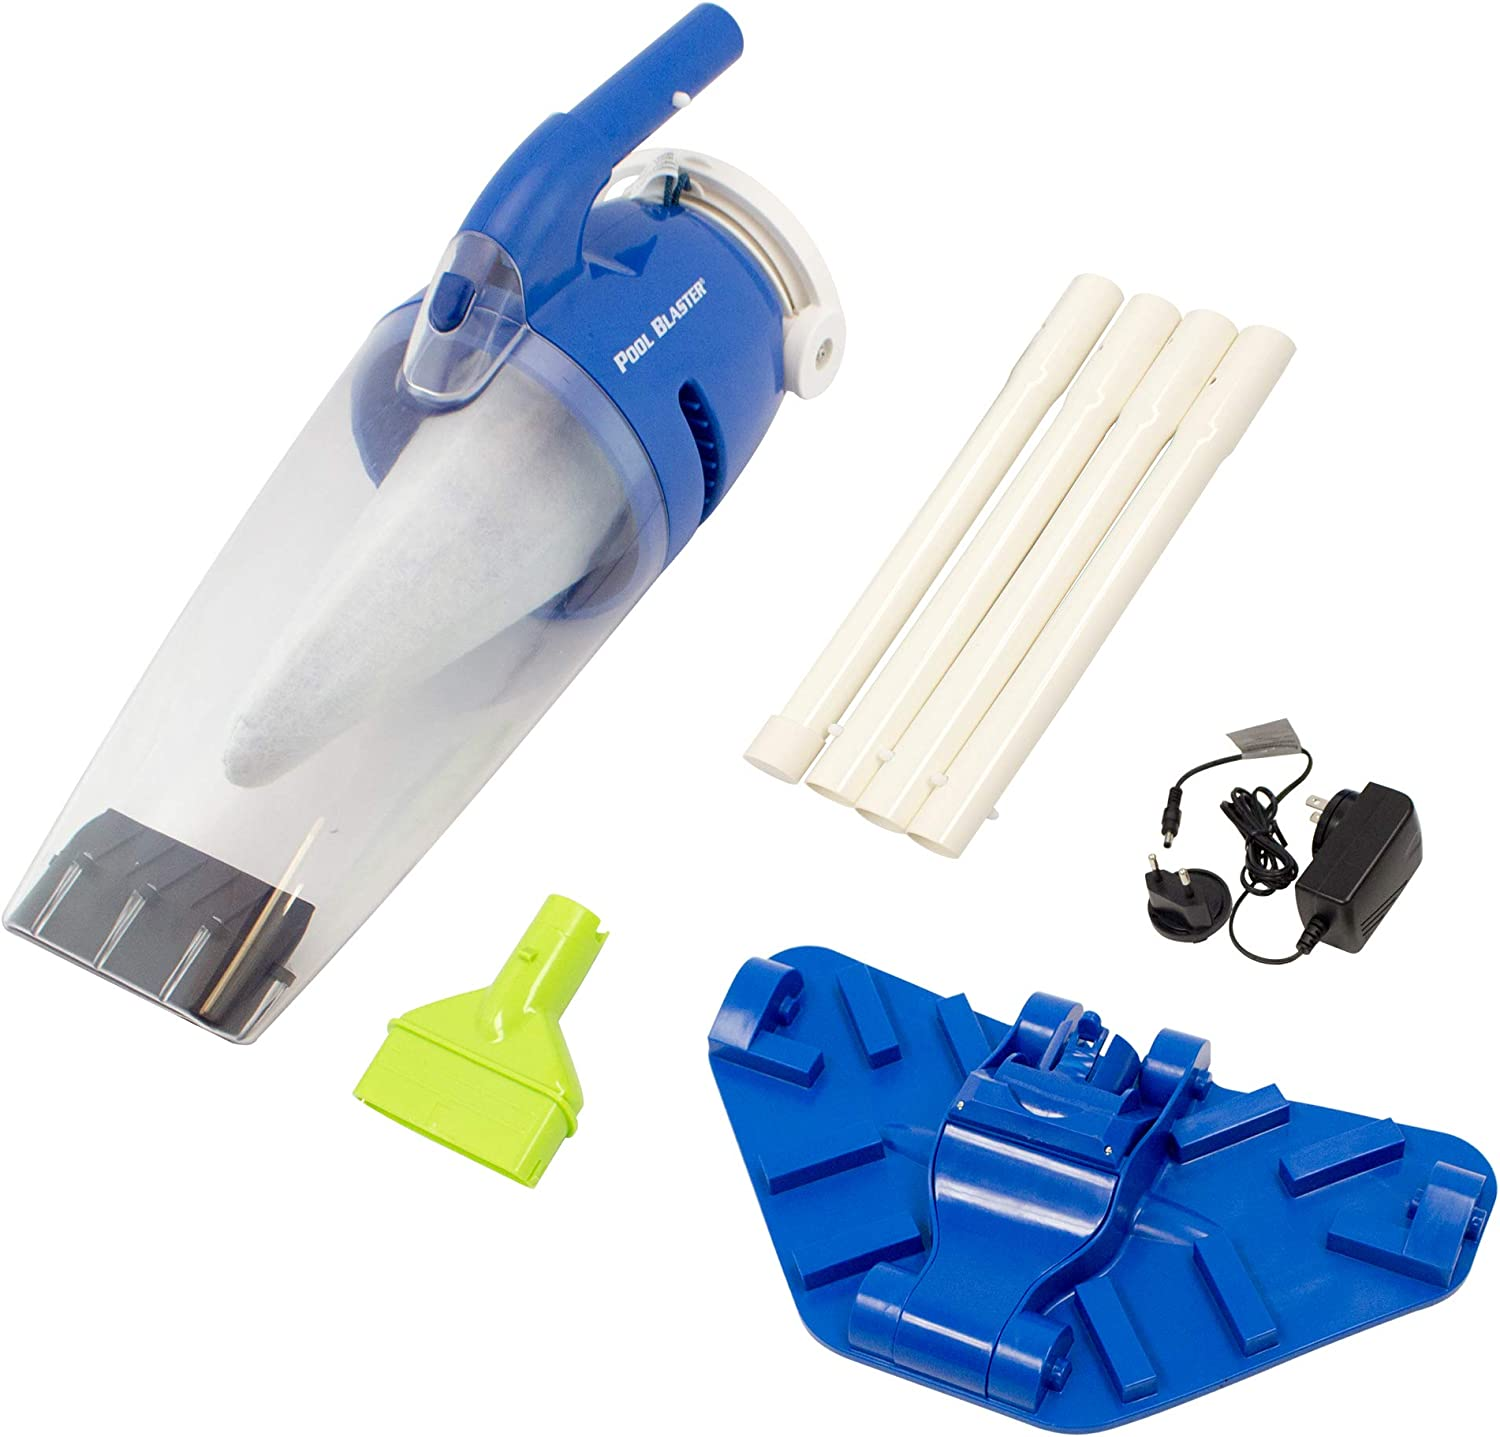 Bestway Pool Cleaner Automatic Suction Maintenance Kit